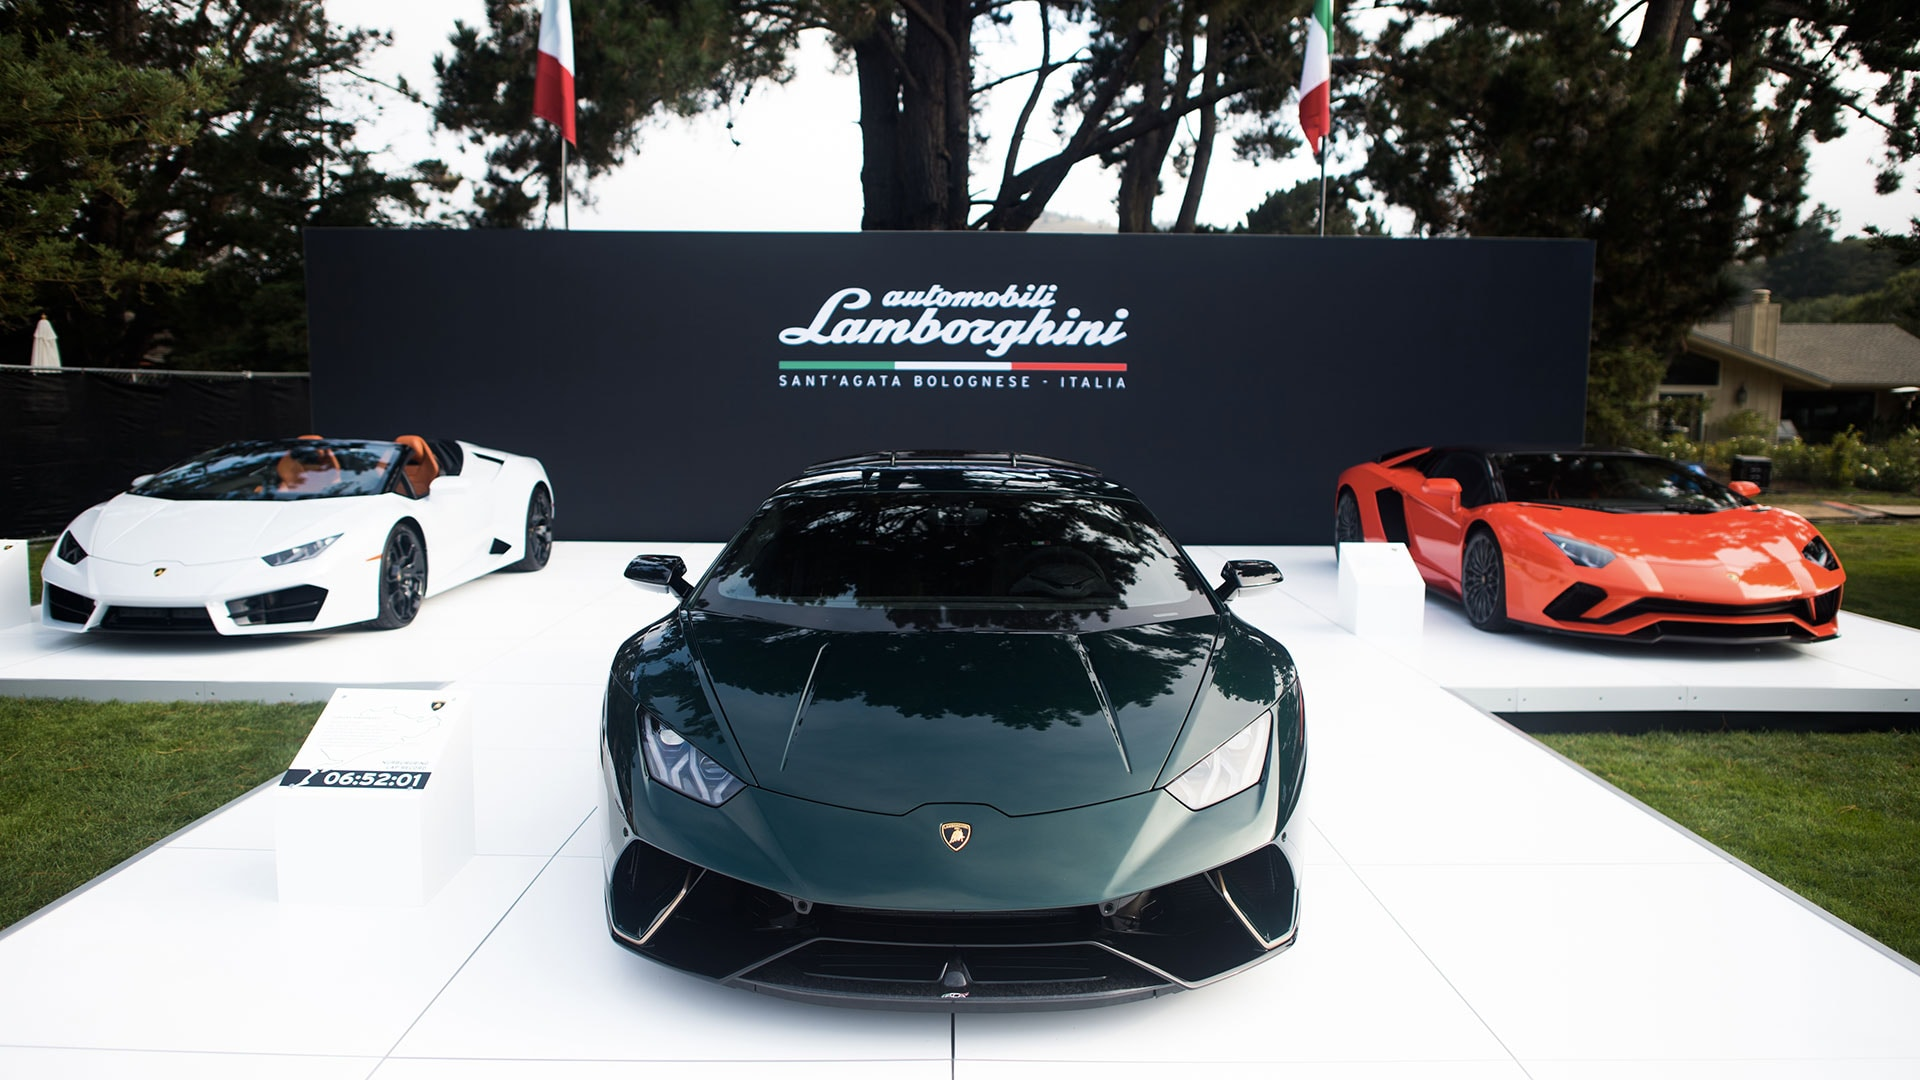 rs release lamborghini gallery one is boasts aventador out a this roadster sought maxing and by km h pin after most cr at the automobili models latest for price cars of lp